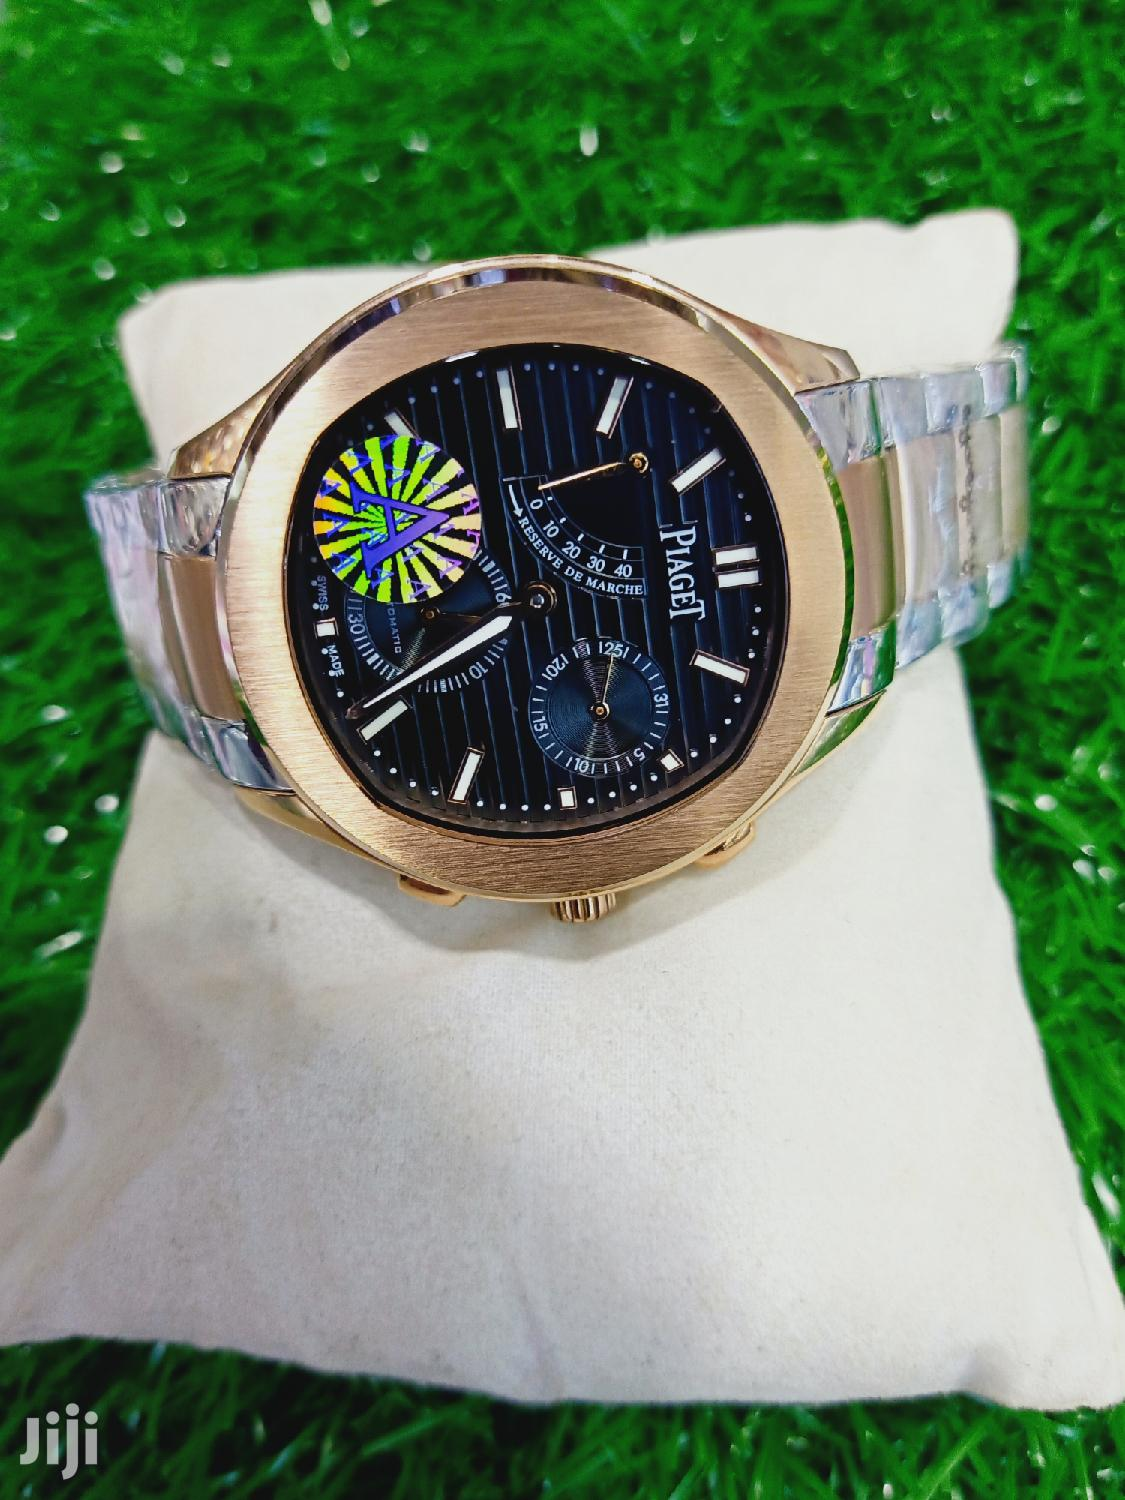 Piaget Watch | Watches for sale in Kampala, Central Region, Uganda